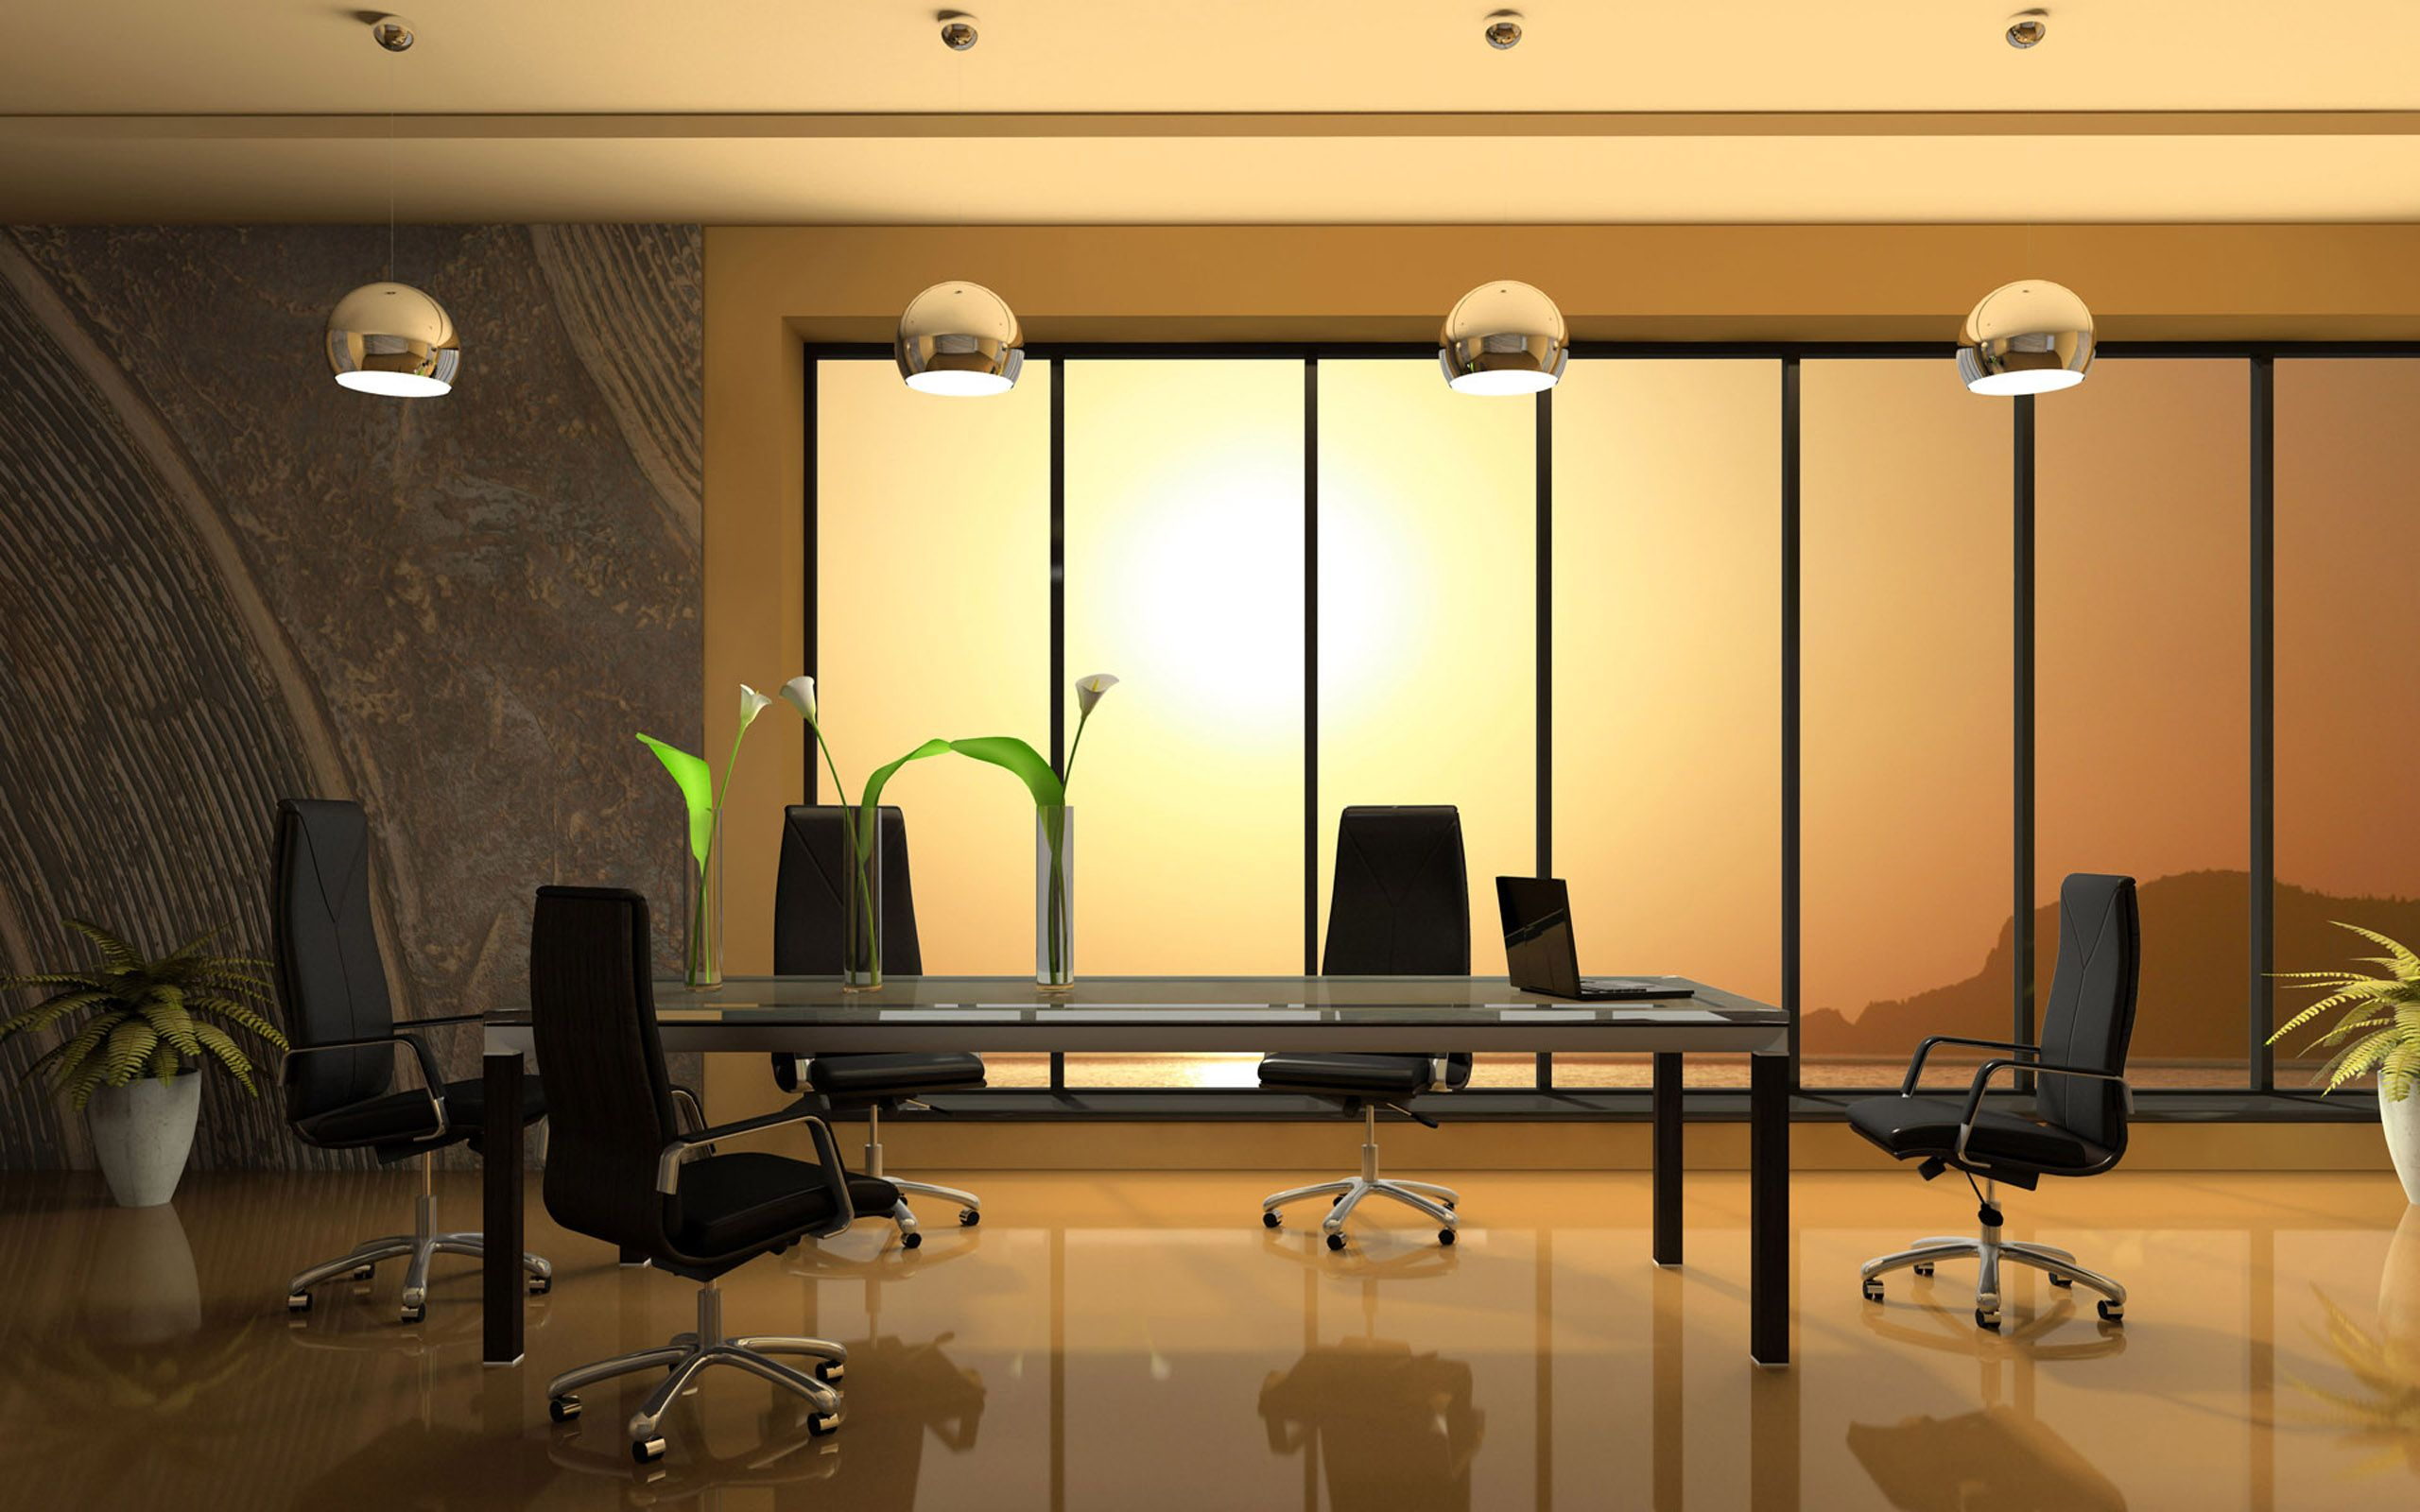 home office design ideas tuscan. Meeting Room With Rectangle Glass Conference Table And Five Black Swivel Chairs On Brown Glossy Floor: Modern For Office Furniture Home Design Ideas Tuscan O